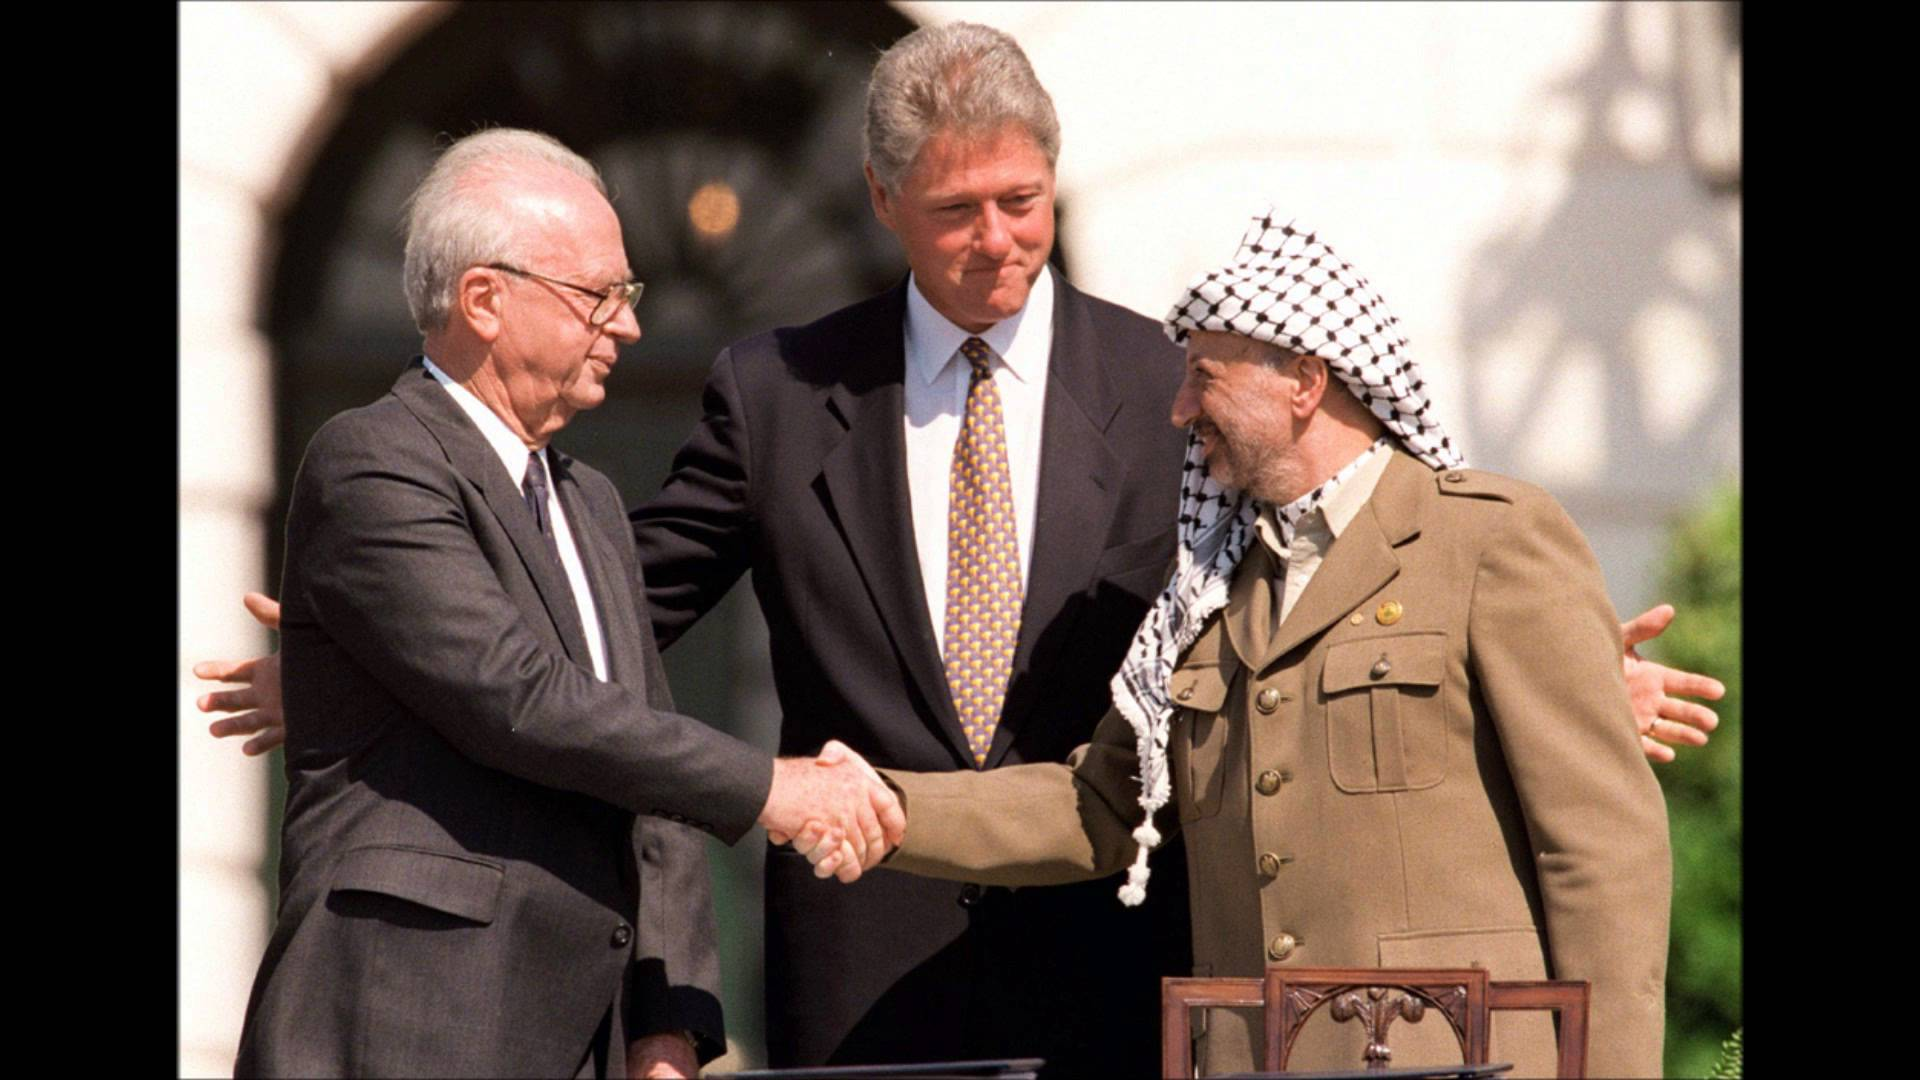 Ten basic facts about the Israeli-Palestinian conflict